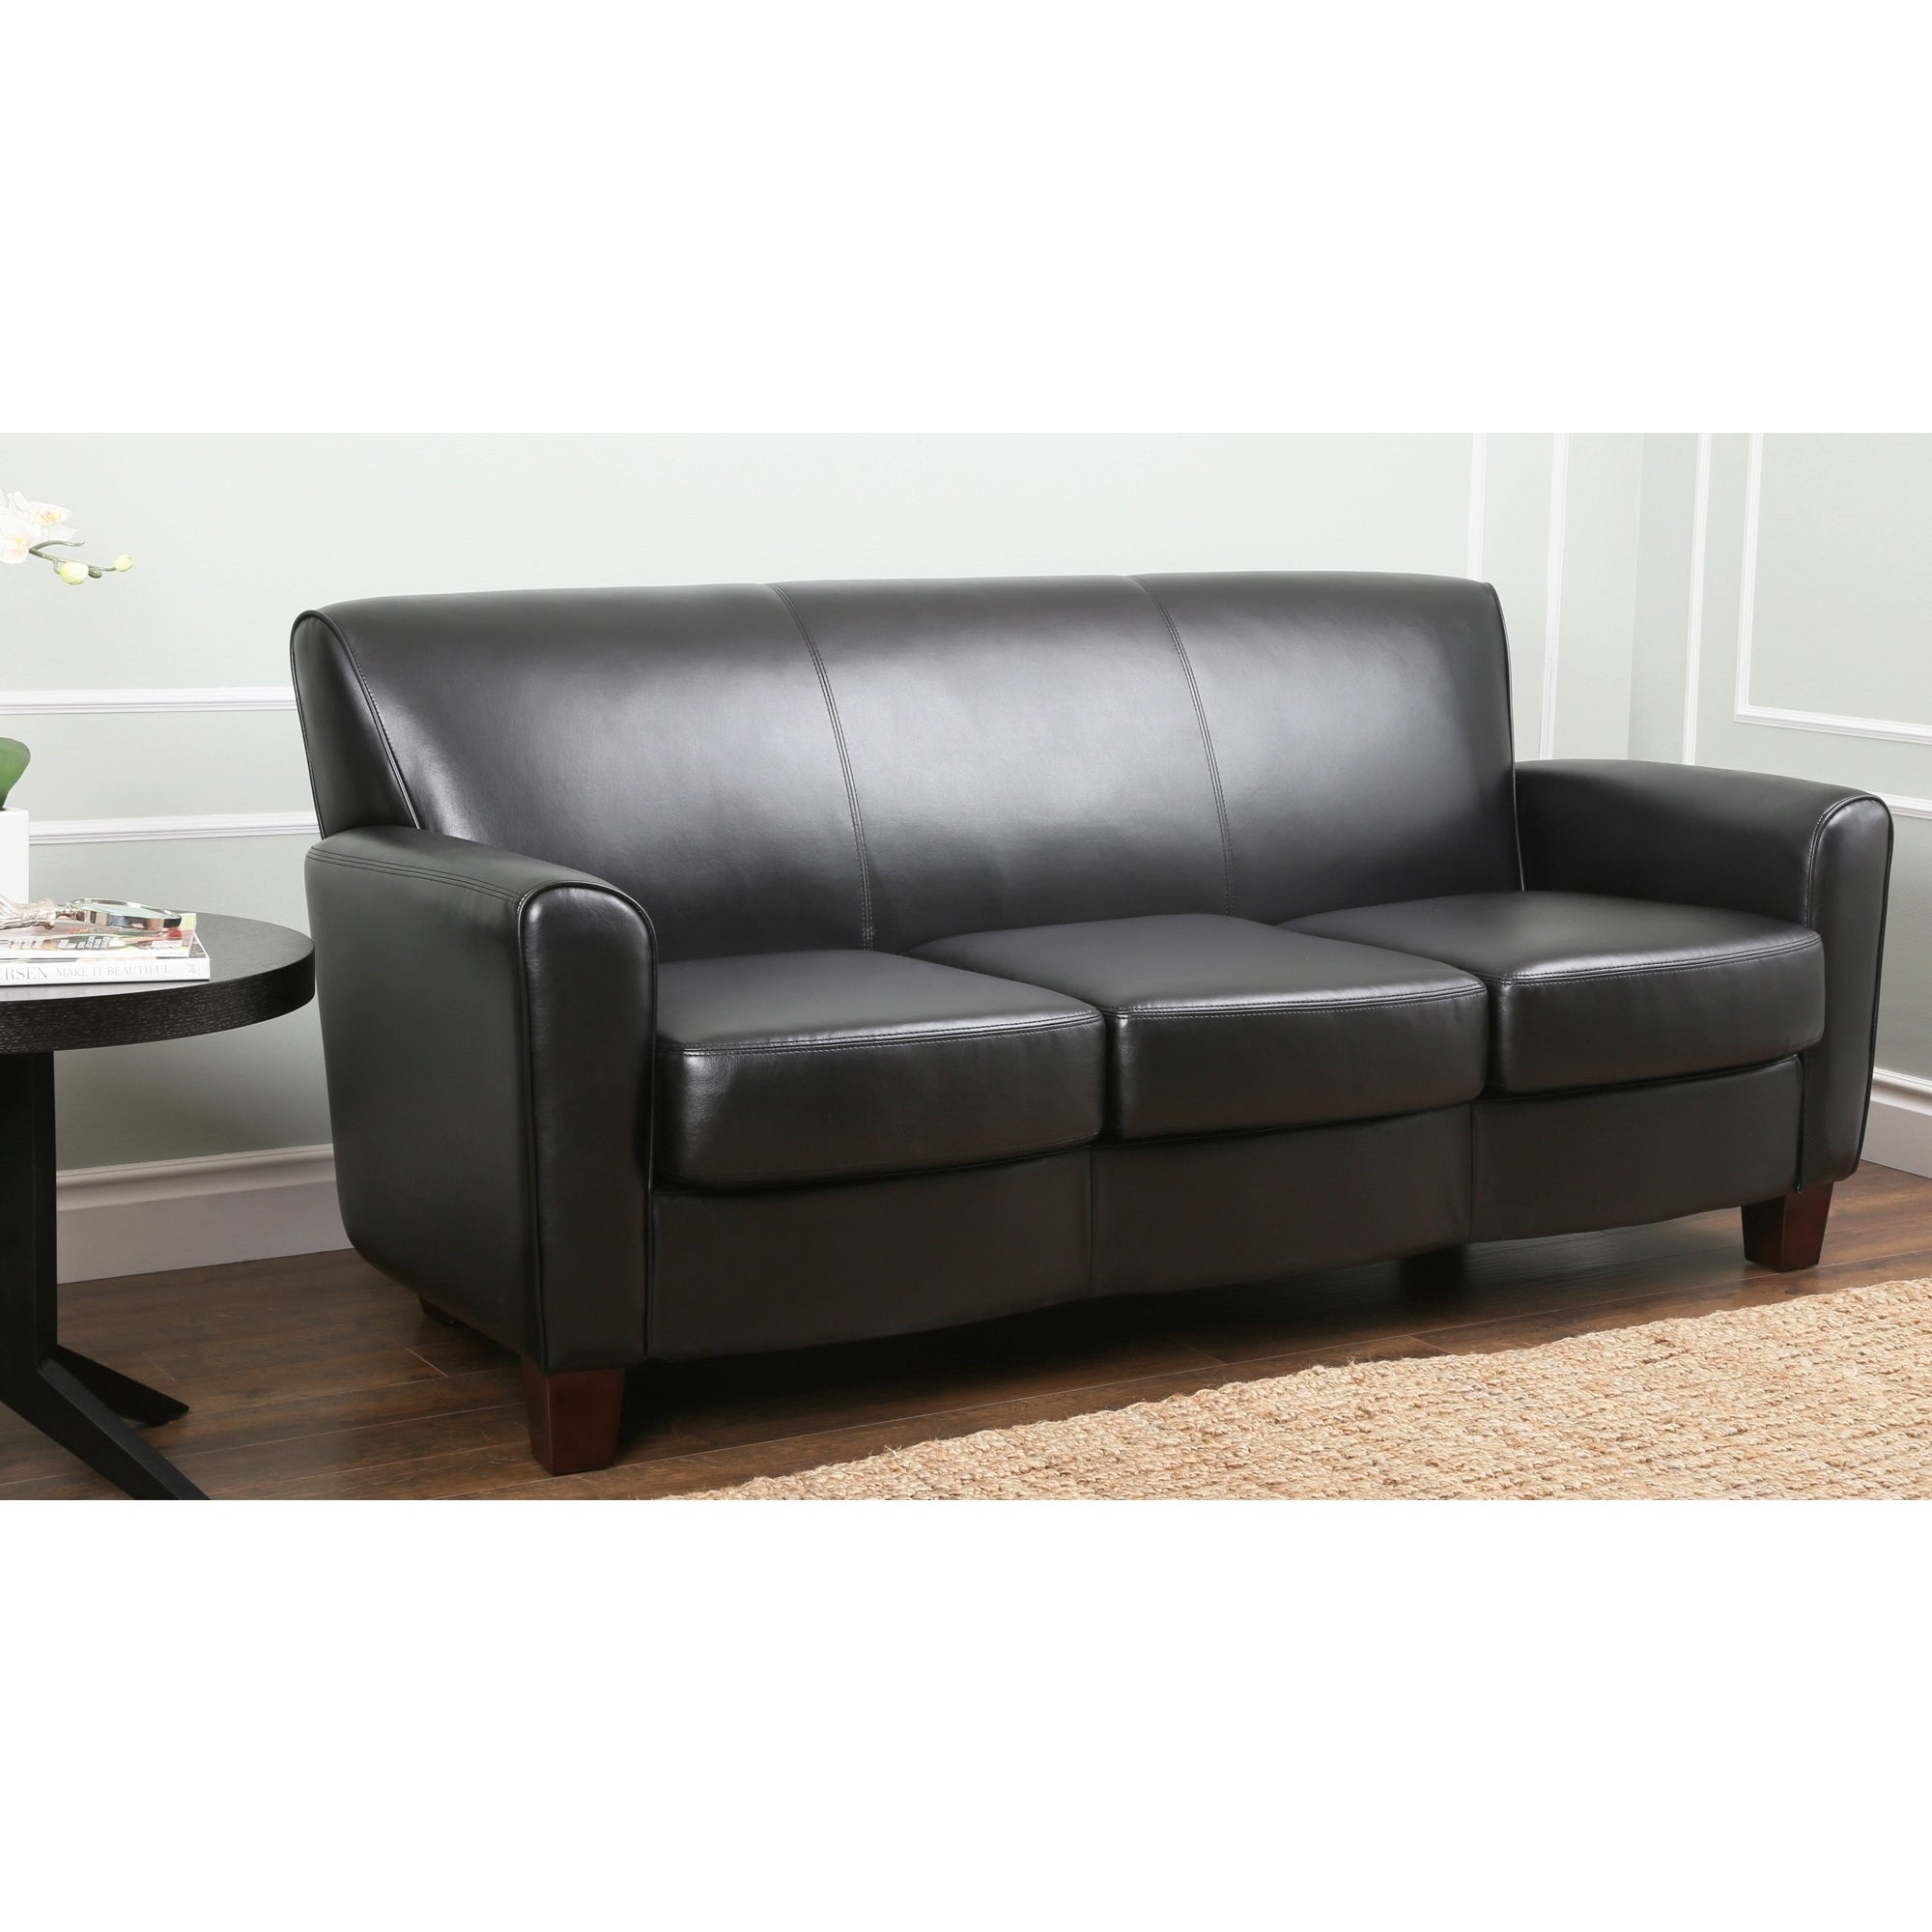 Abbyson living easton black leather sofa overstock for Easton leather sectional sofa